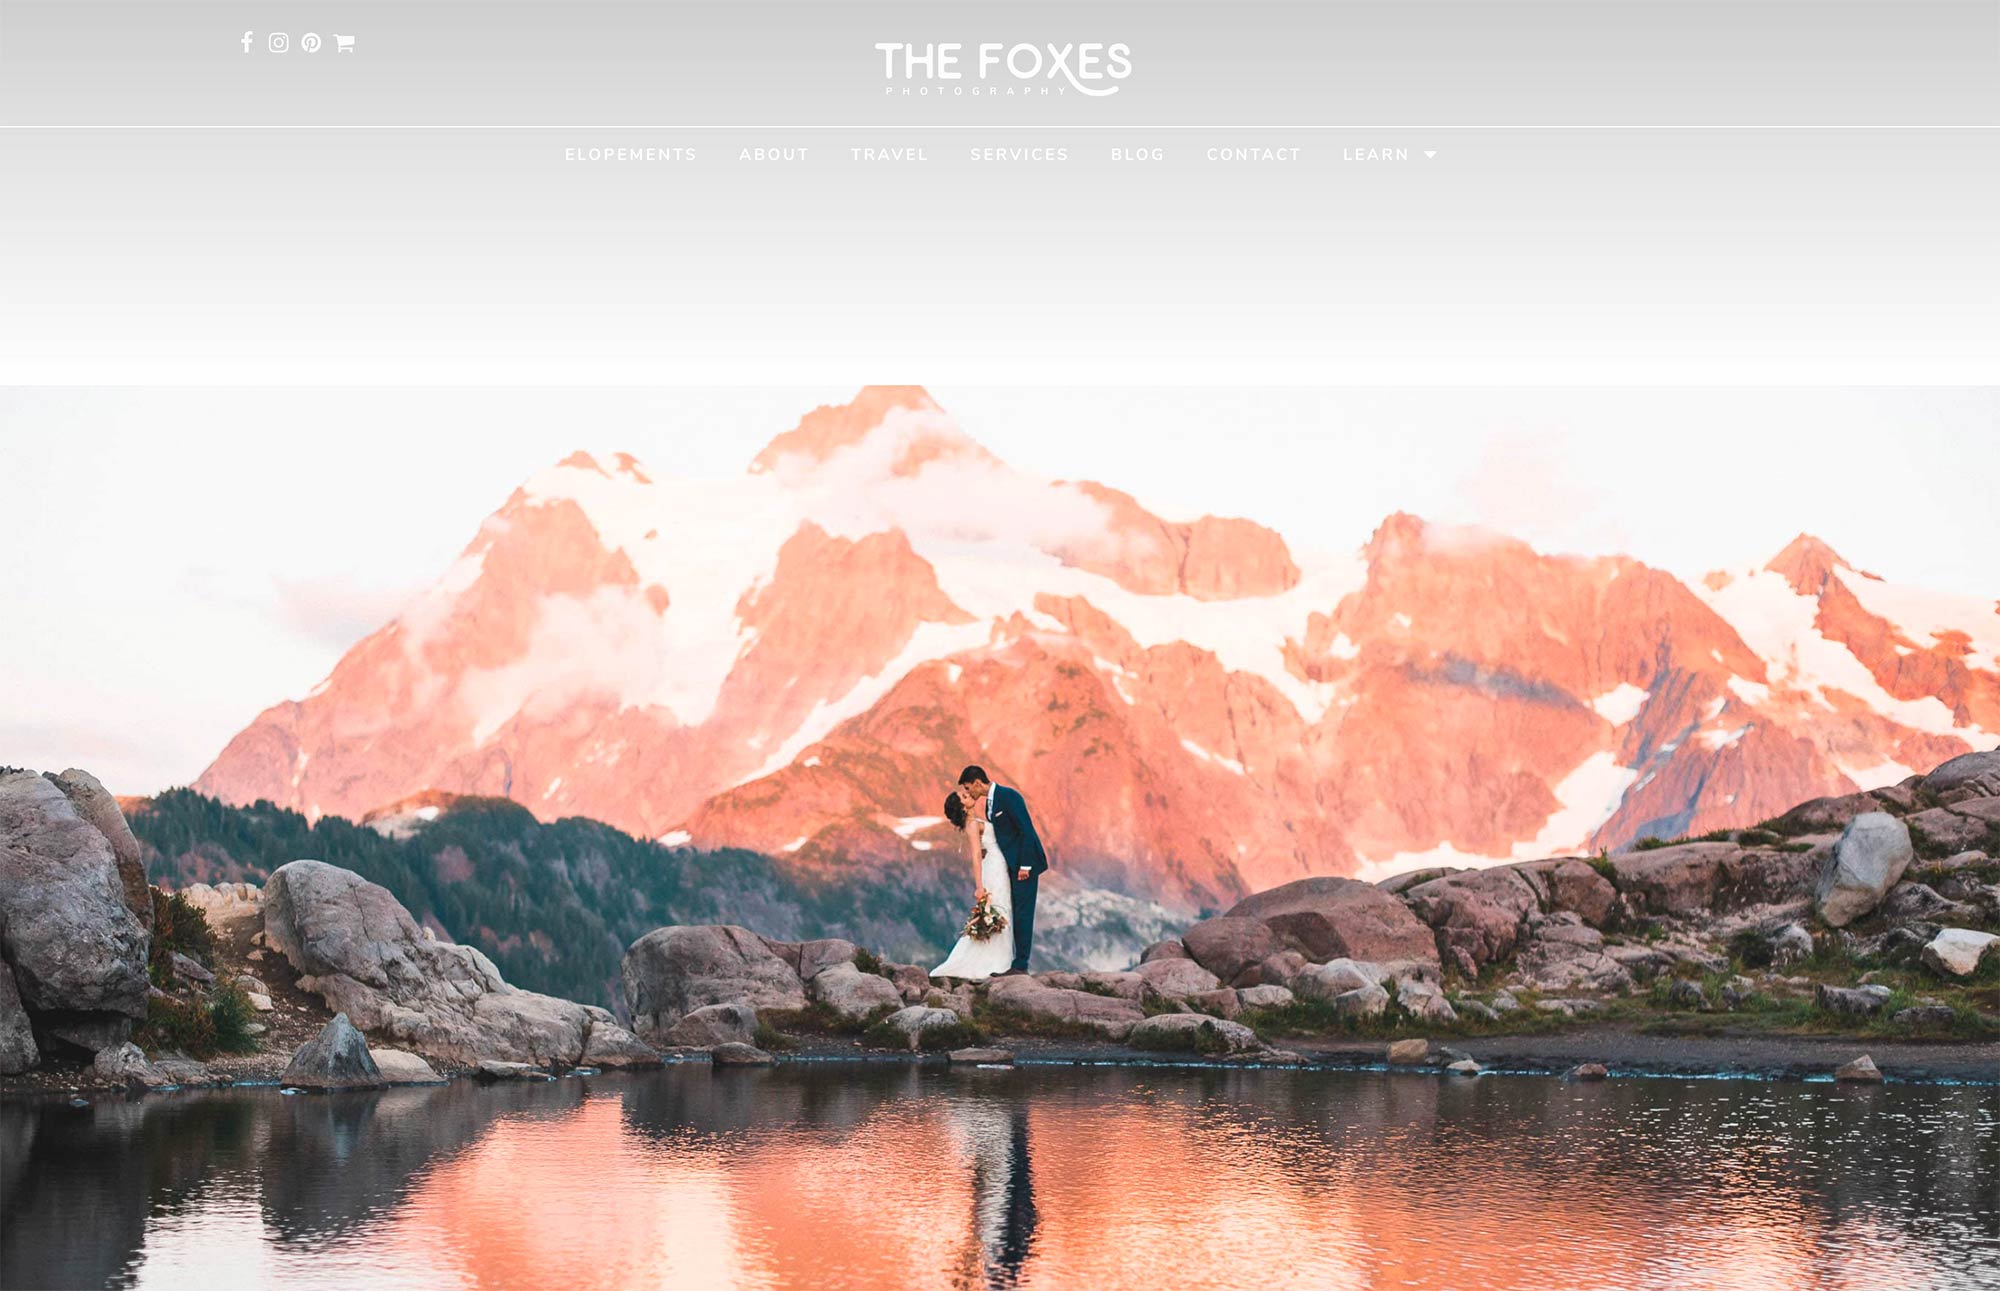 The Foxes